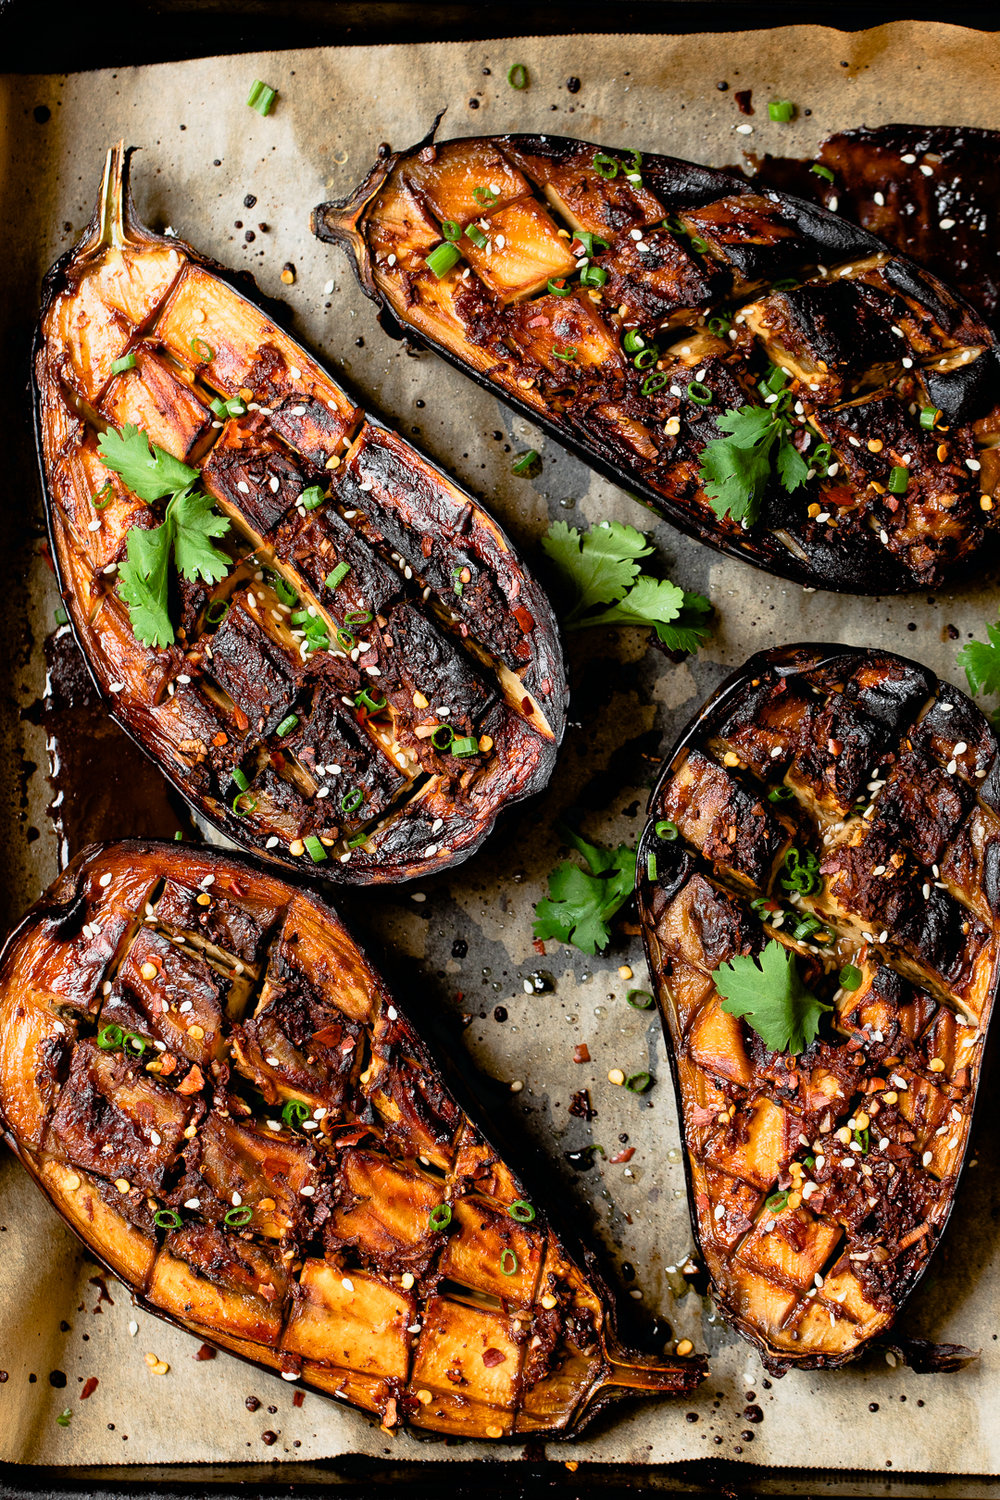 Ginger_Miso_Glazed_Eggplant_by_Jordan_Pie_Nutritionist_Photographer-1.jpg